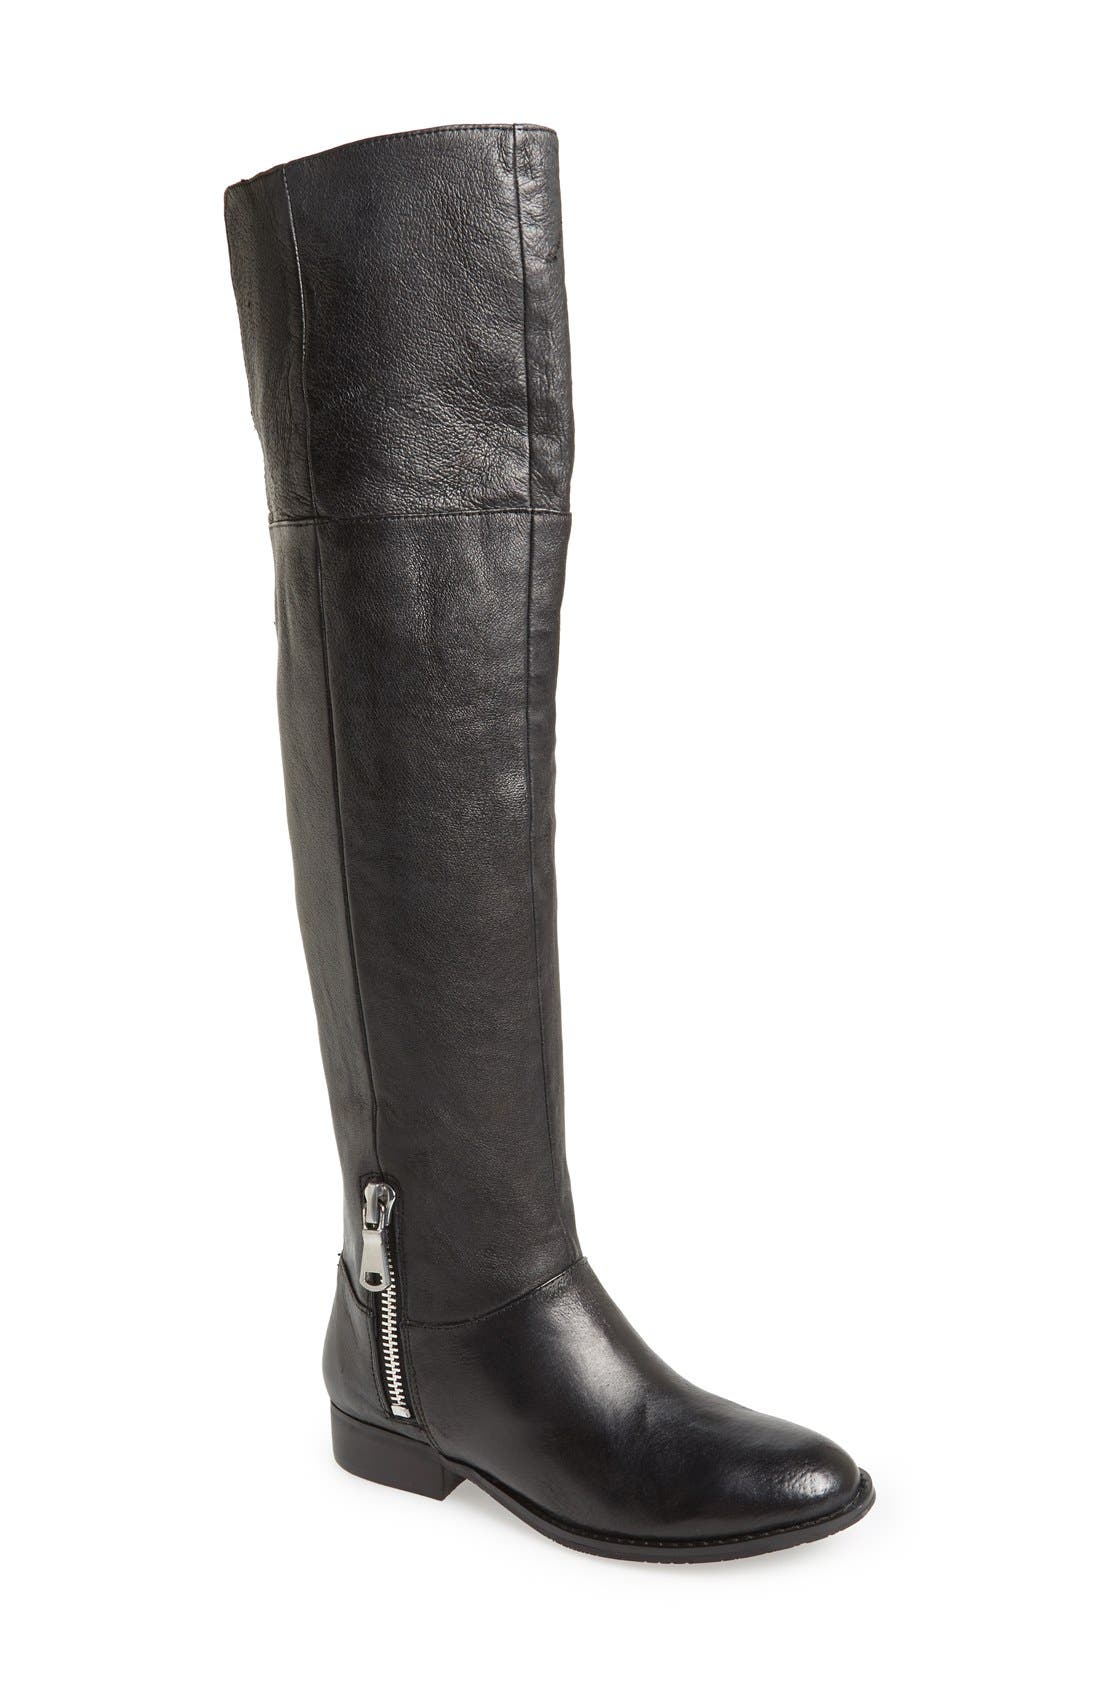 CHINESE LAUNDRY 'Fawn' Leather Riding Boot, Main, color, 001